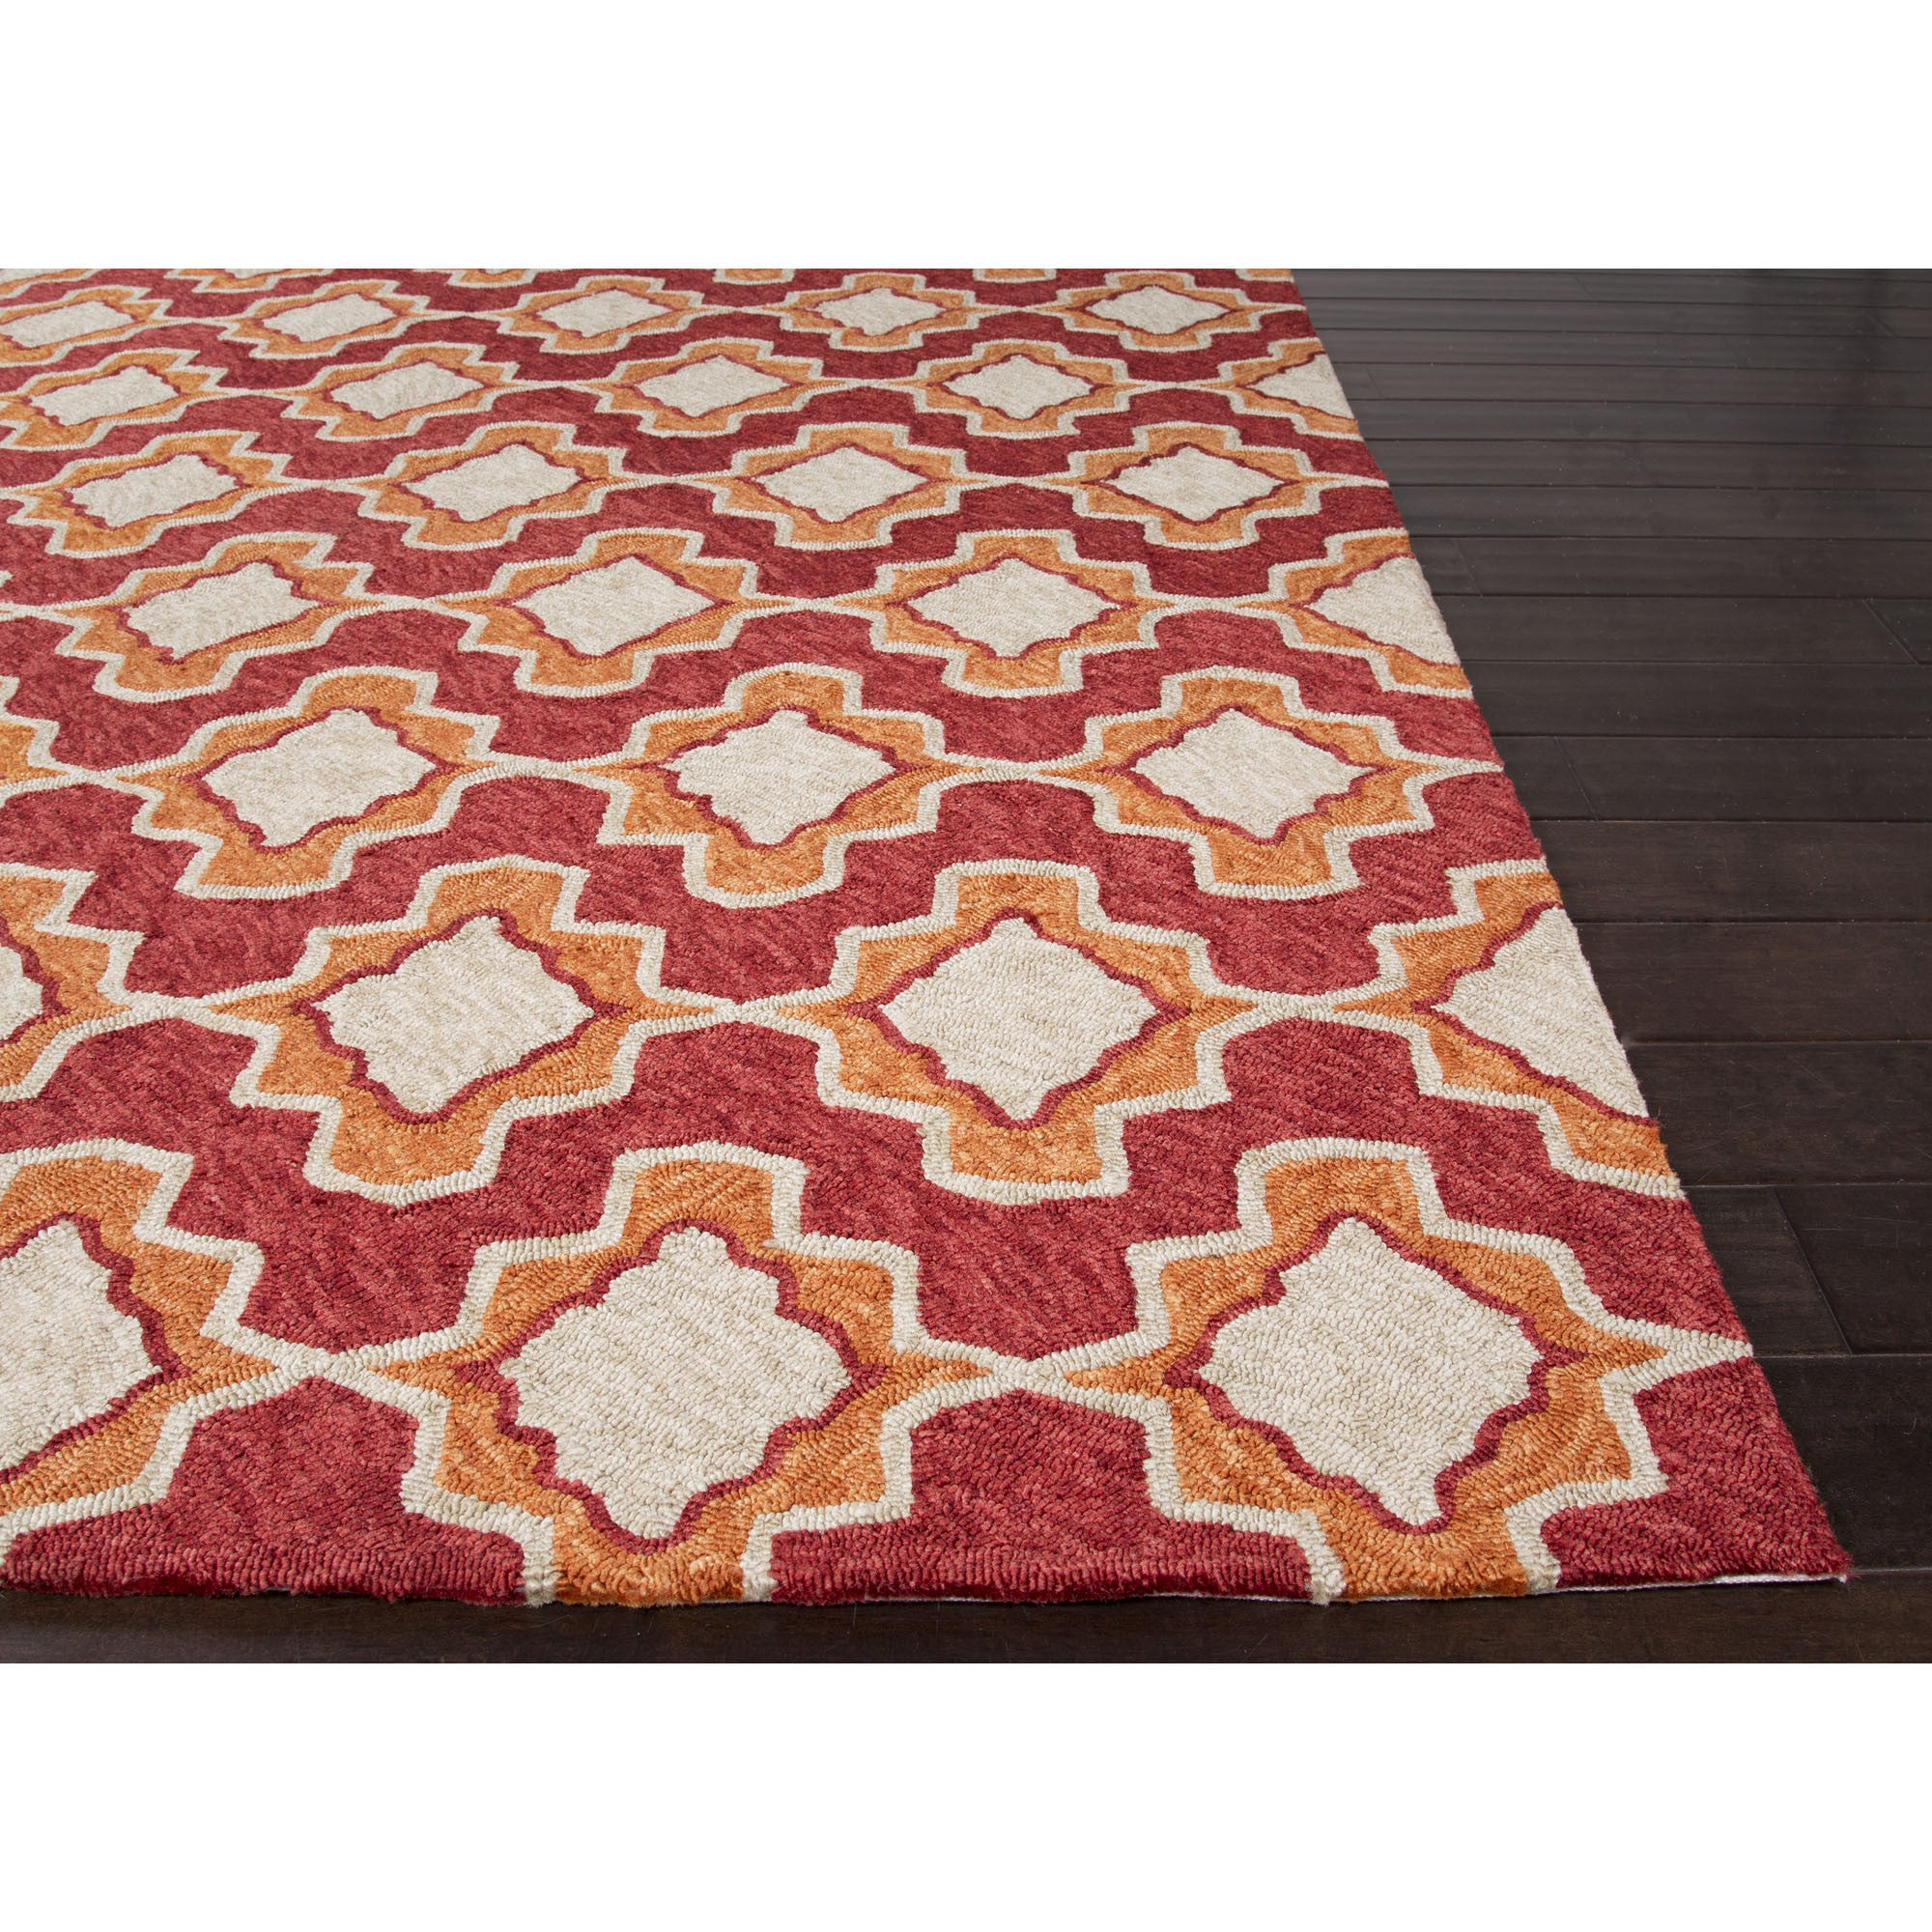 Jaipur Rugs IndoorOutdoor Moroccan Pattern Red/Orange